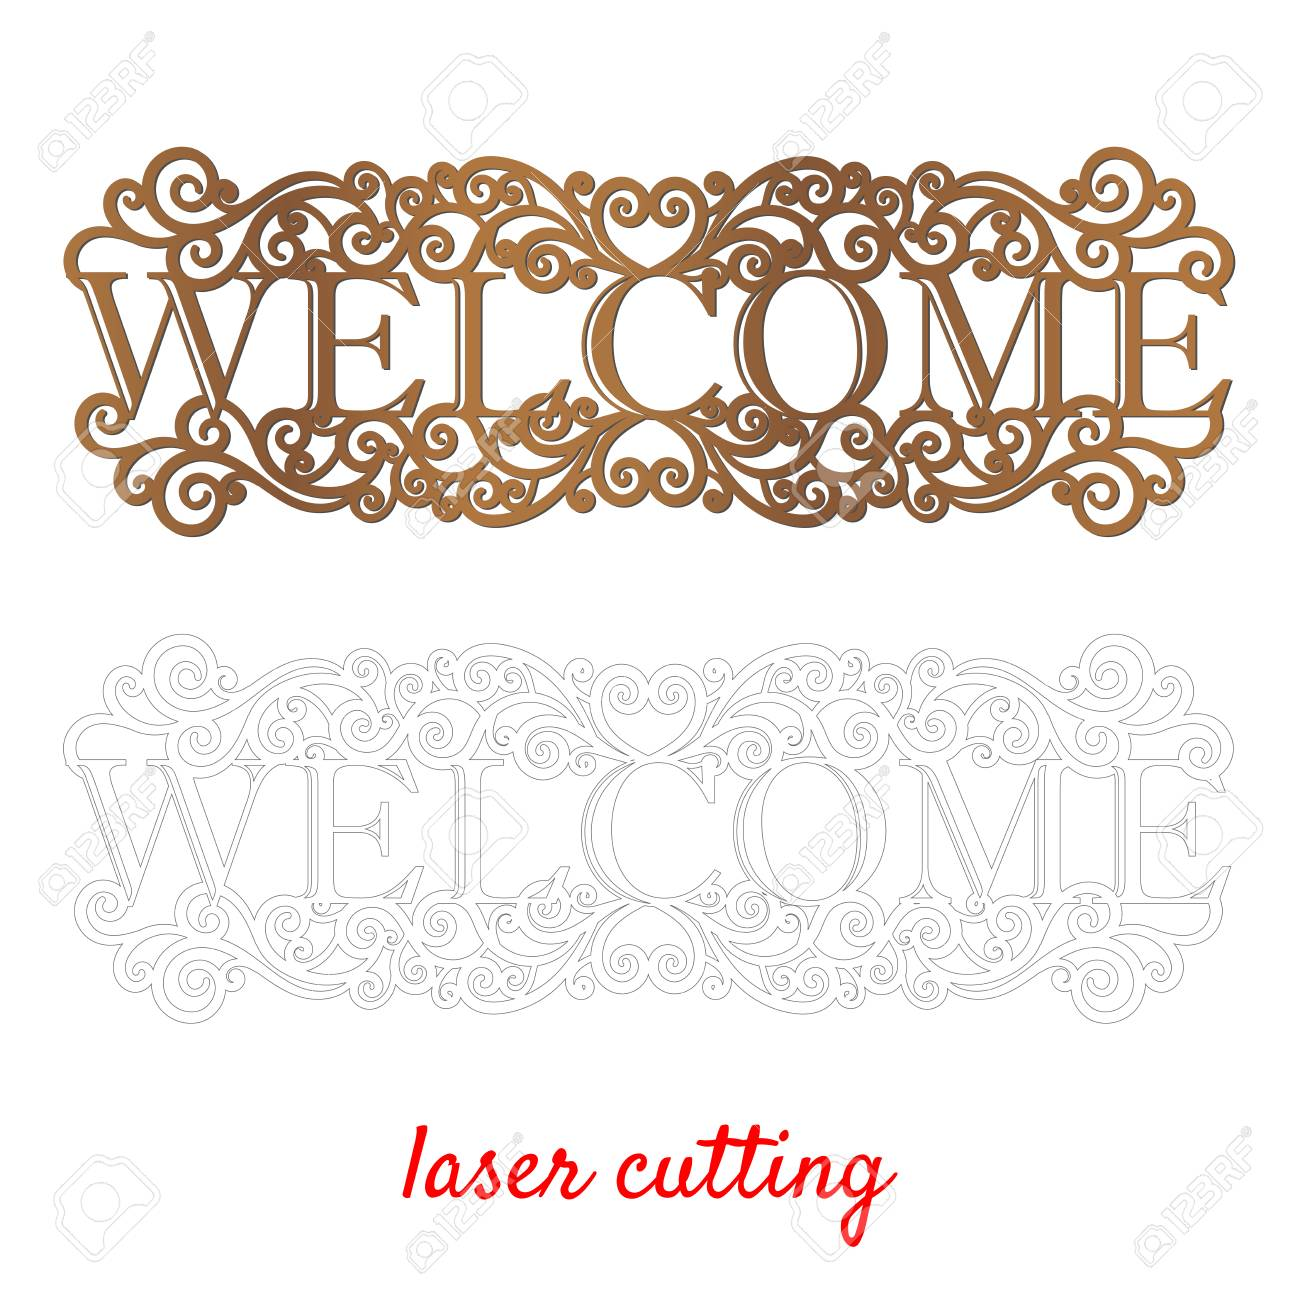 image relating to Welcome Sign Template referred to as Welcome. Indicator for house or place of work. Template laser chopping device..